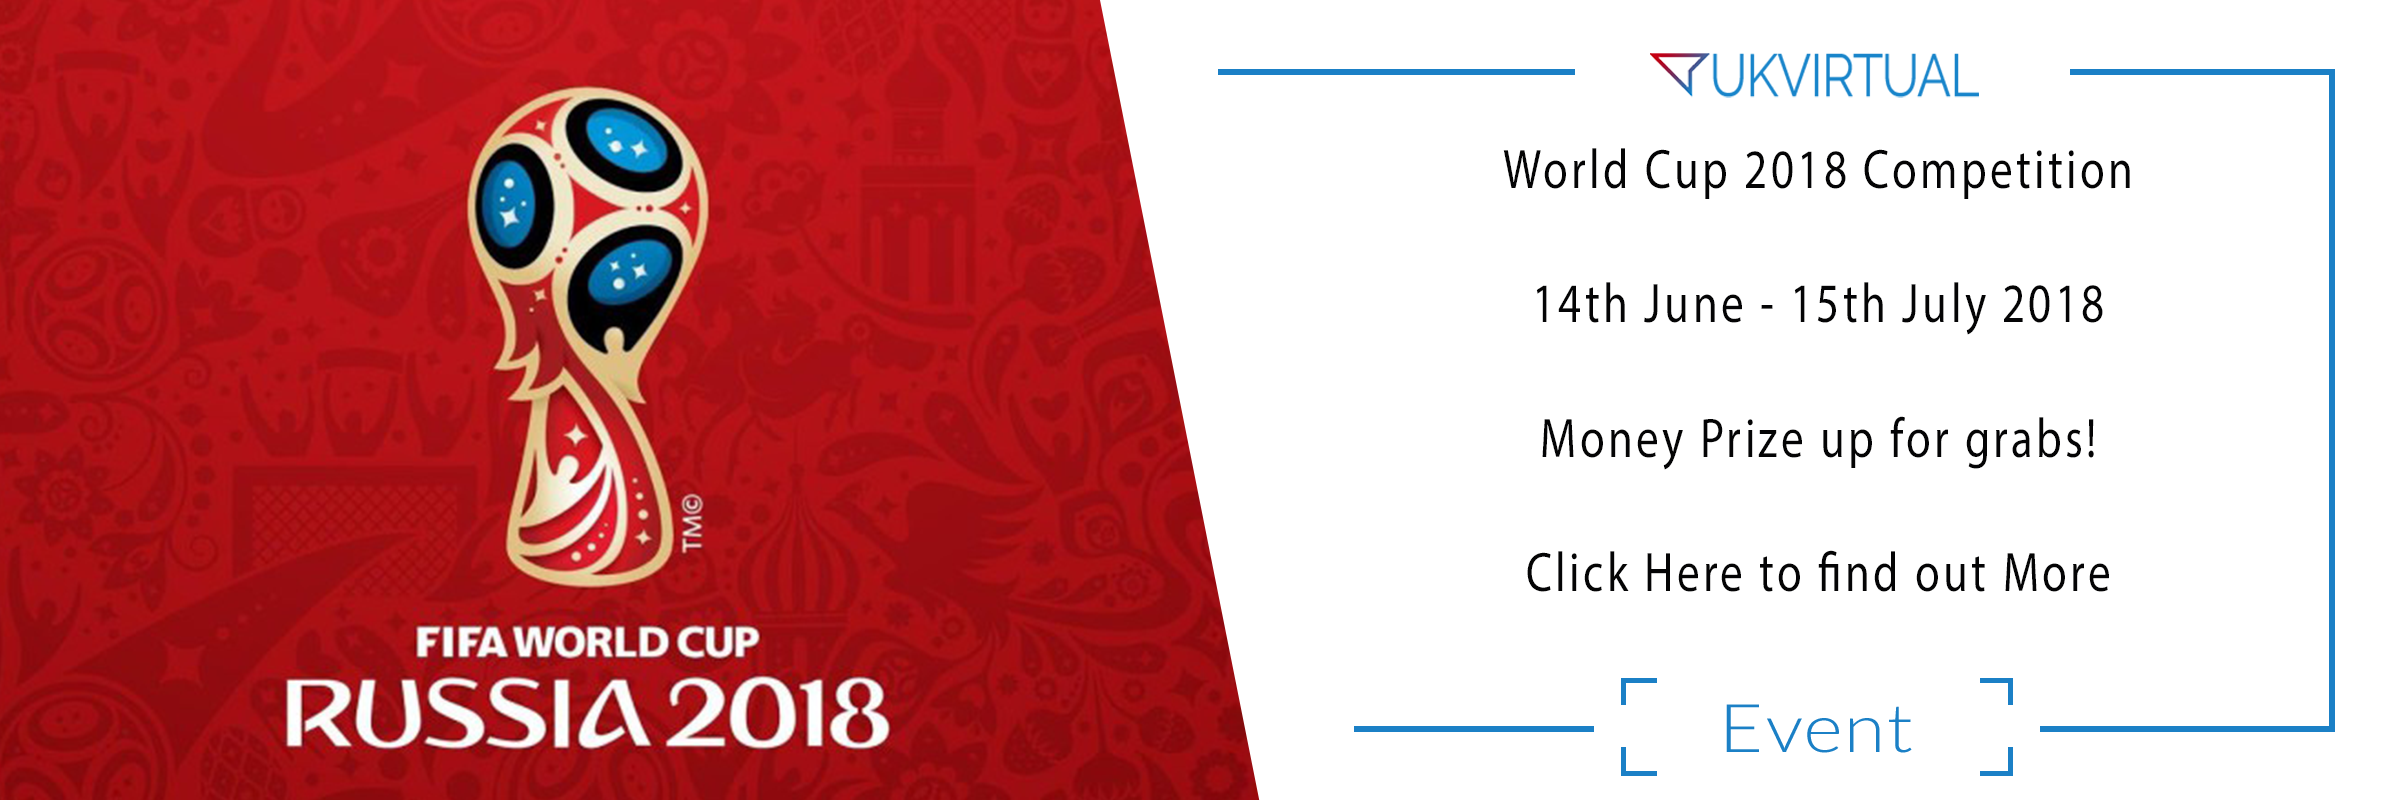 World Cup Competition 2018